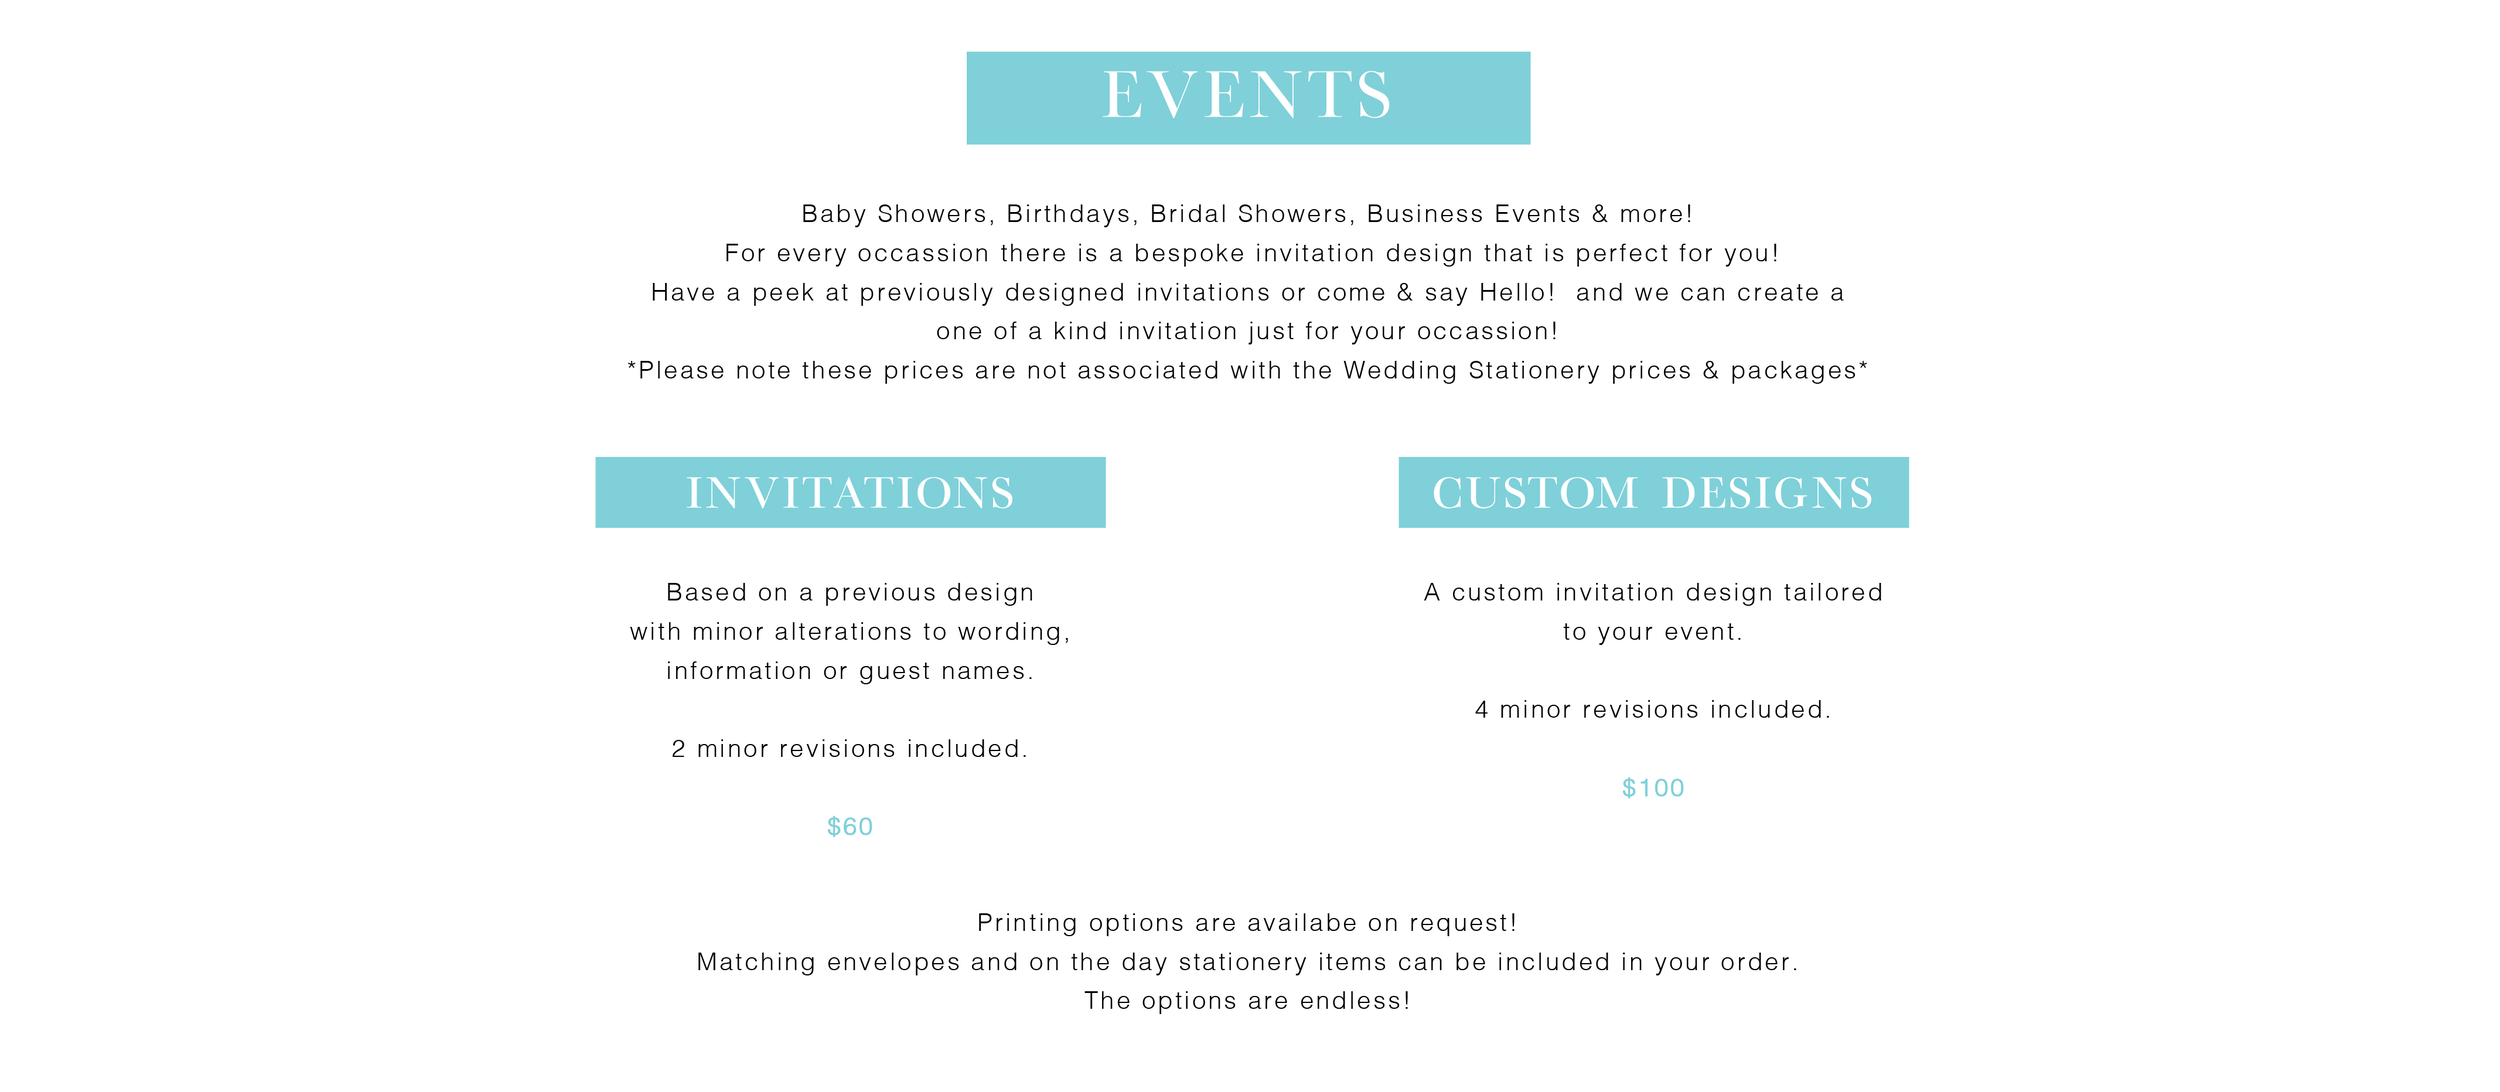 Prices & Packages-EVENTS-03.png